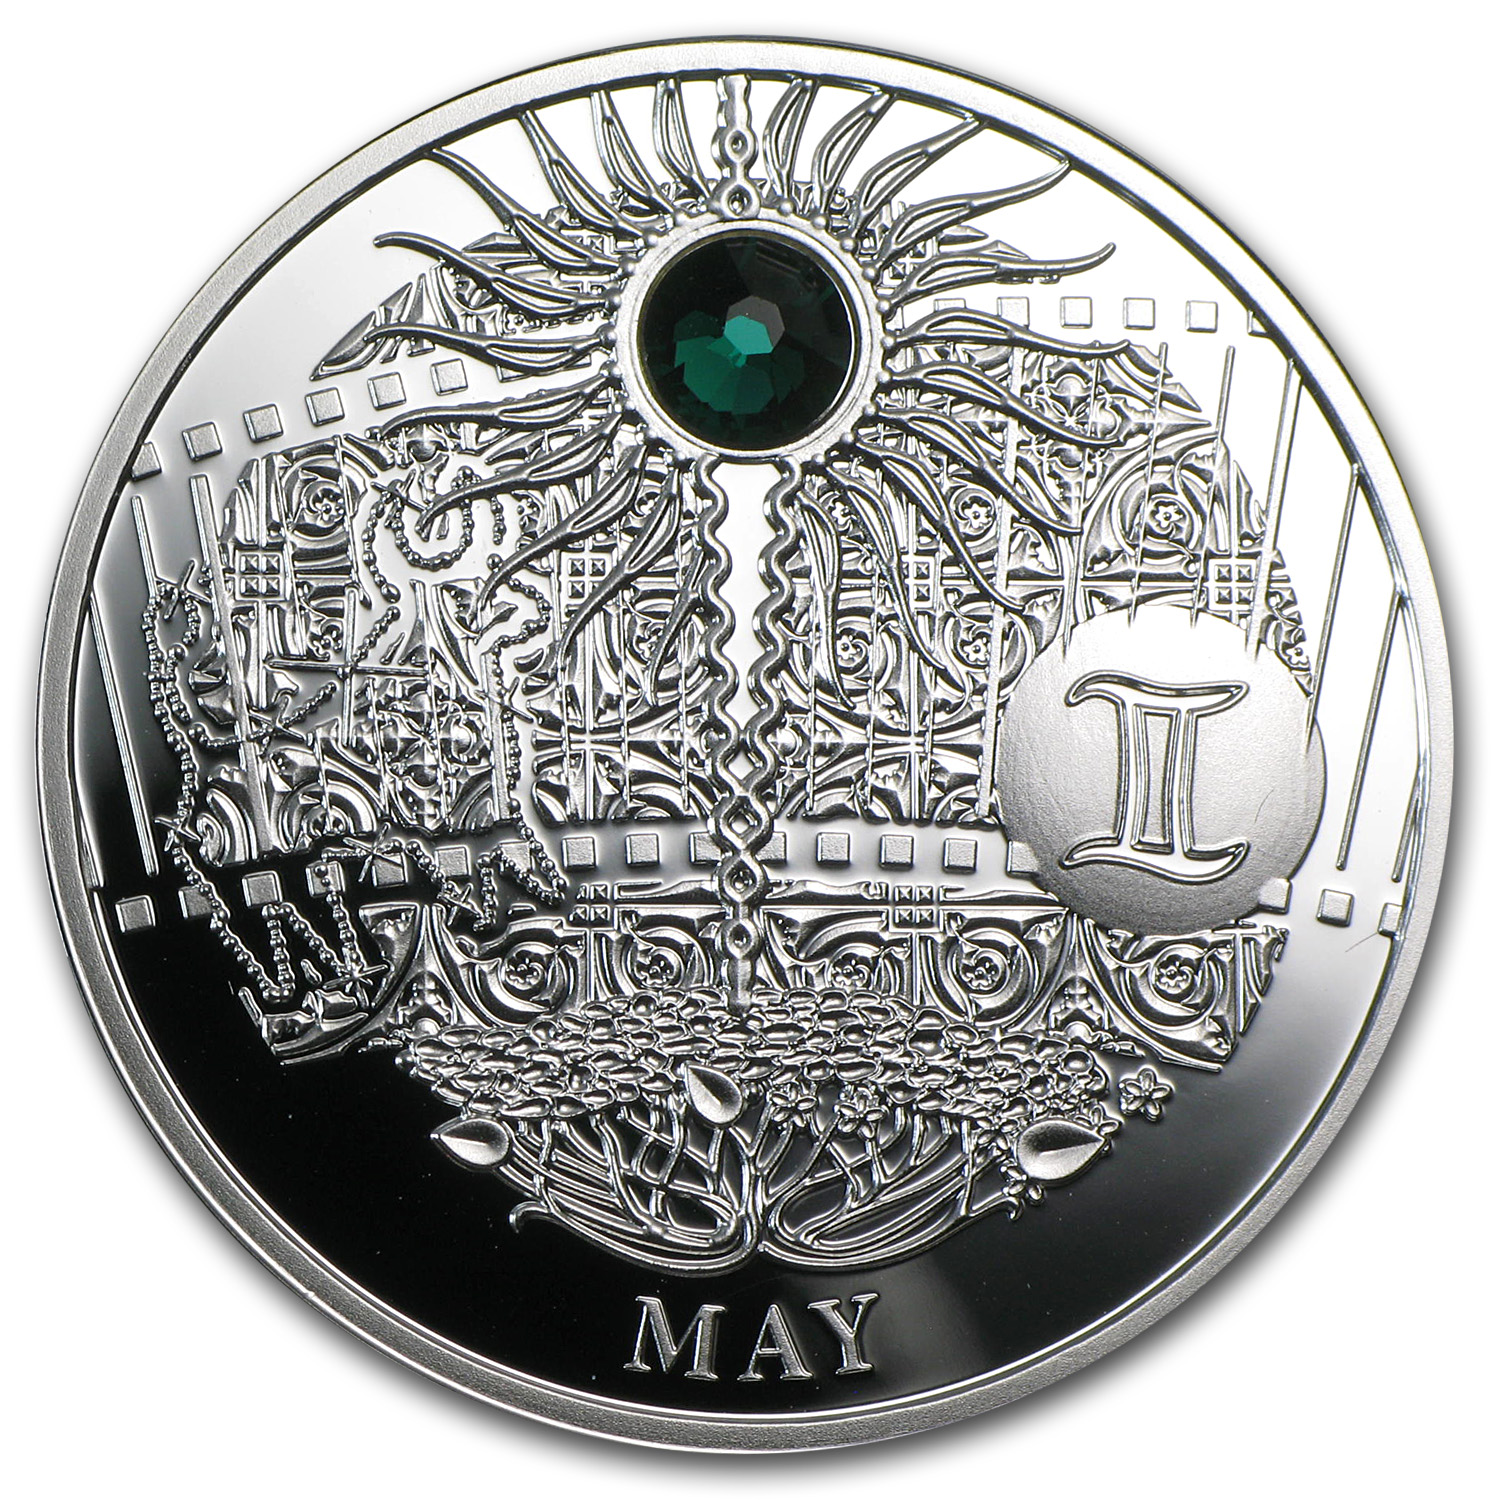 2013 Niue Proof Silver $1 Magic Calendar of Happines May